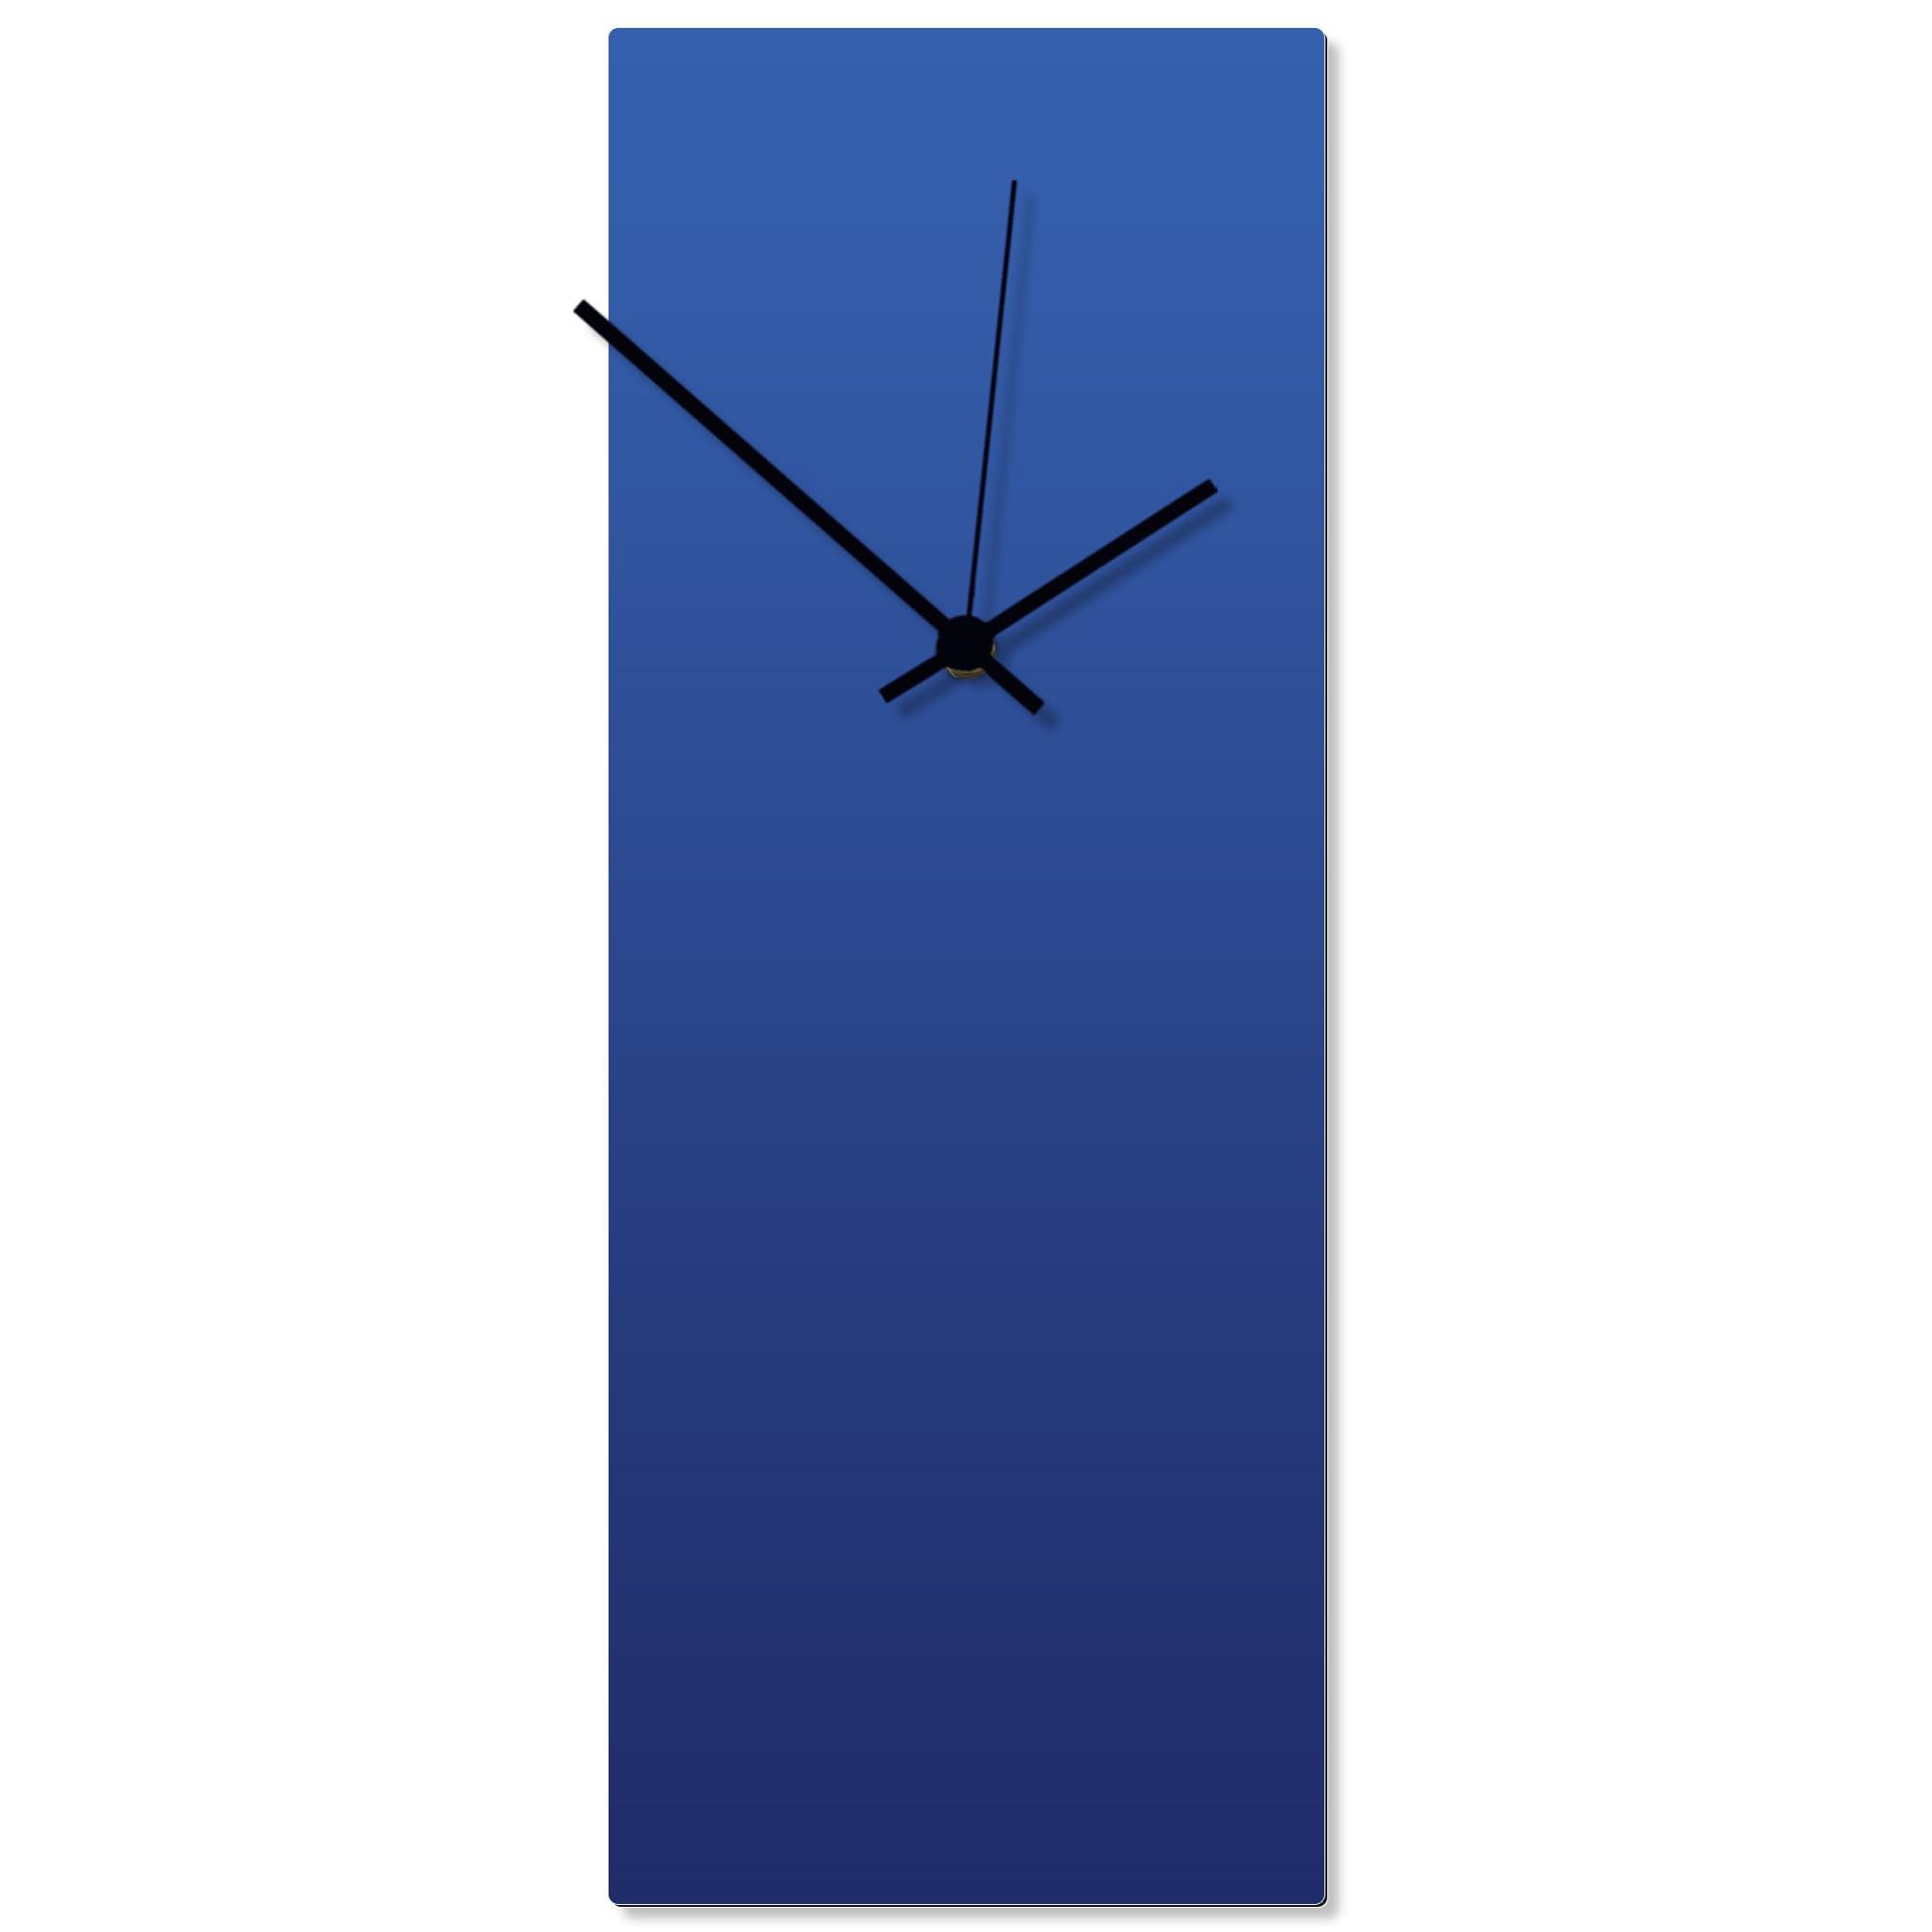 Blueout Black Clock Large 8.25x22in. Aluminum Polymetal